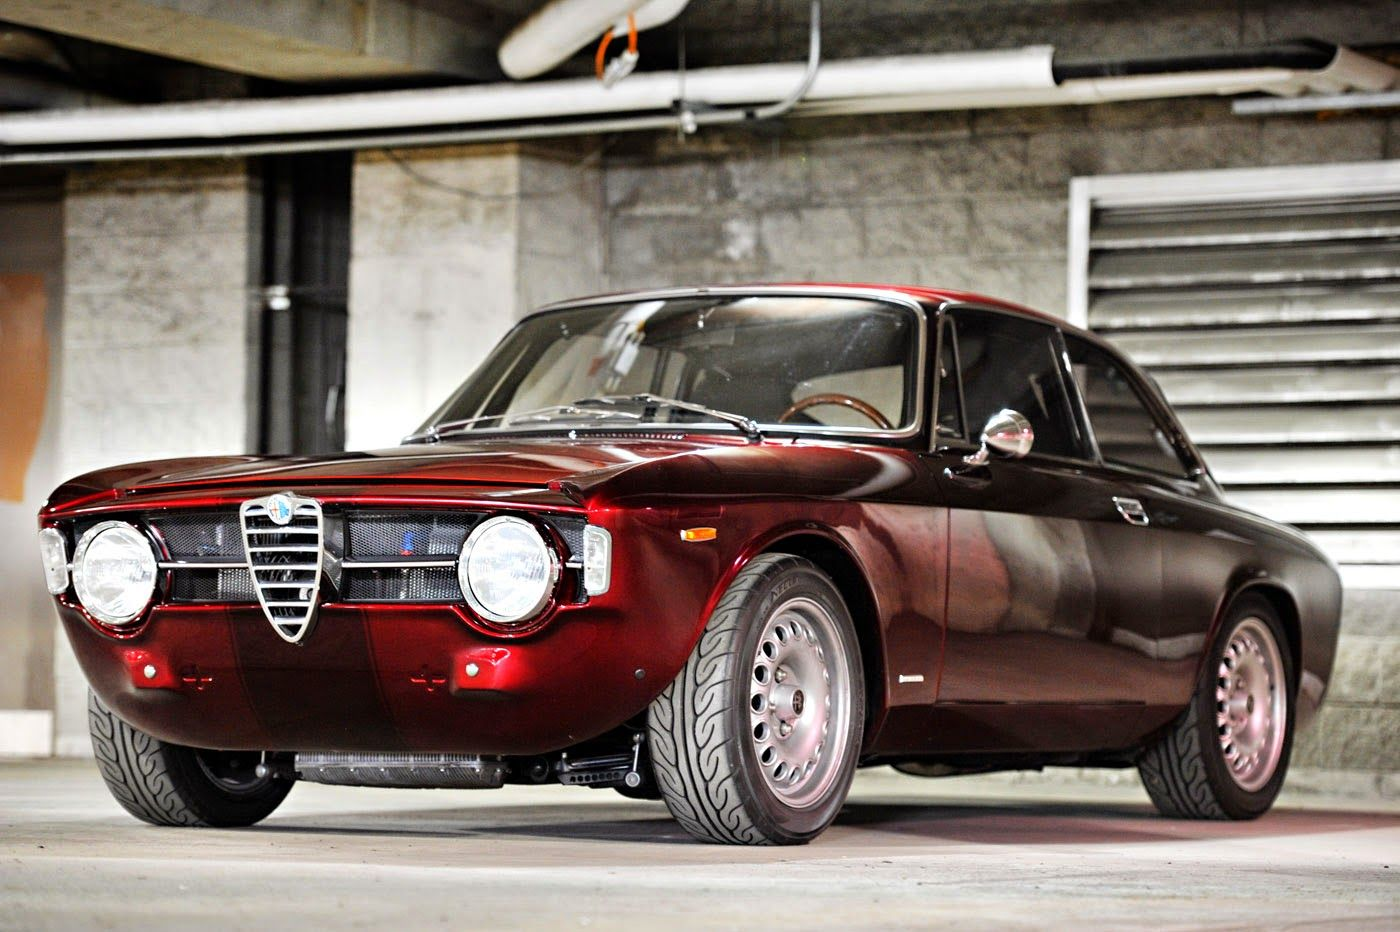 karznshit alfa romeo cool cars motorcycles. Black Bedroom Furniture Sets. Home Design Ideas